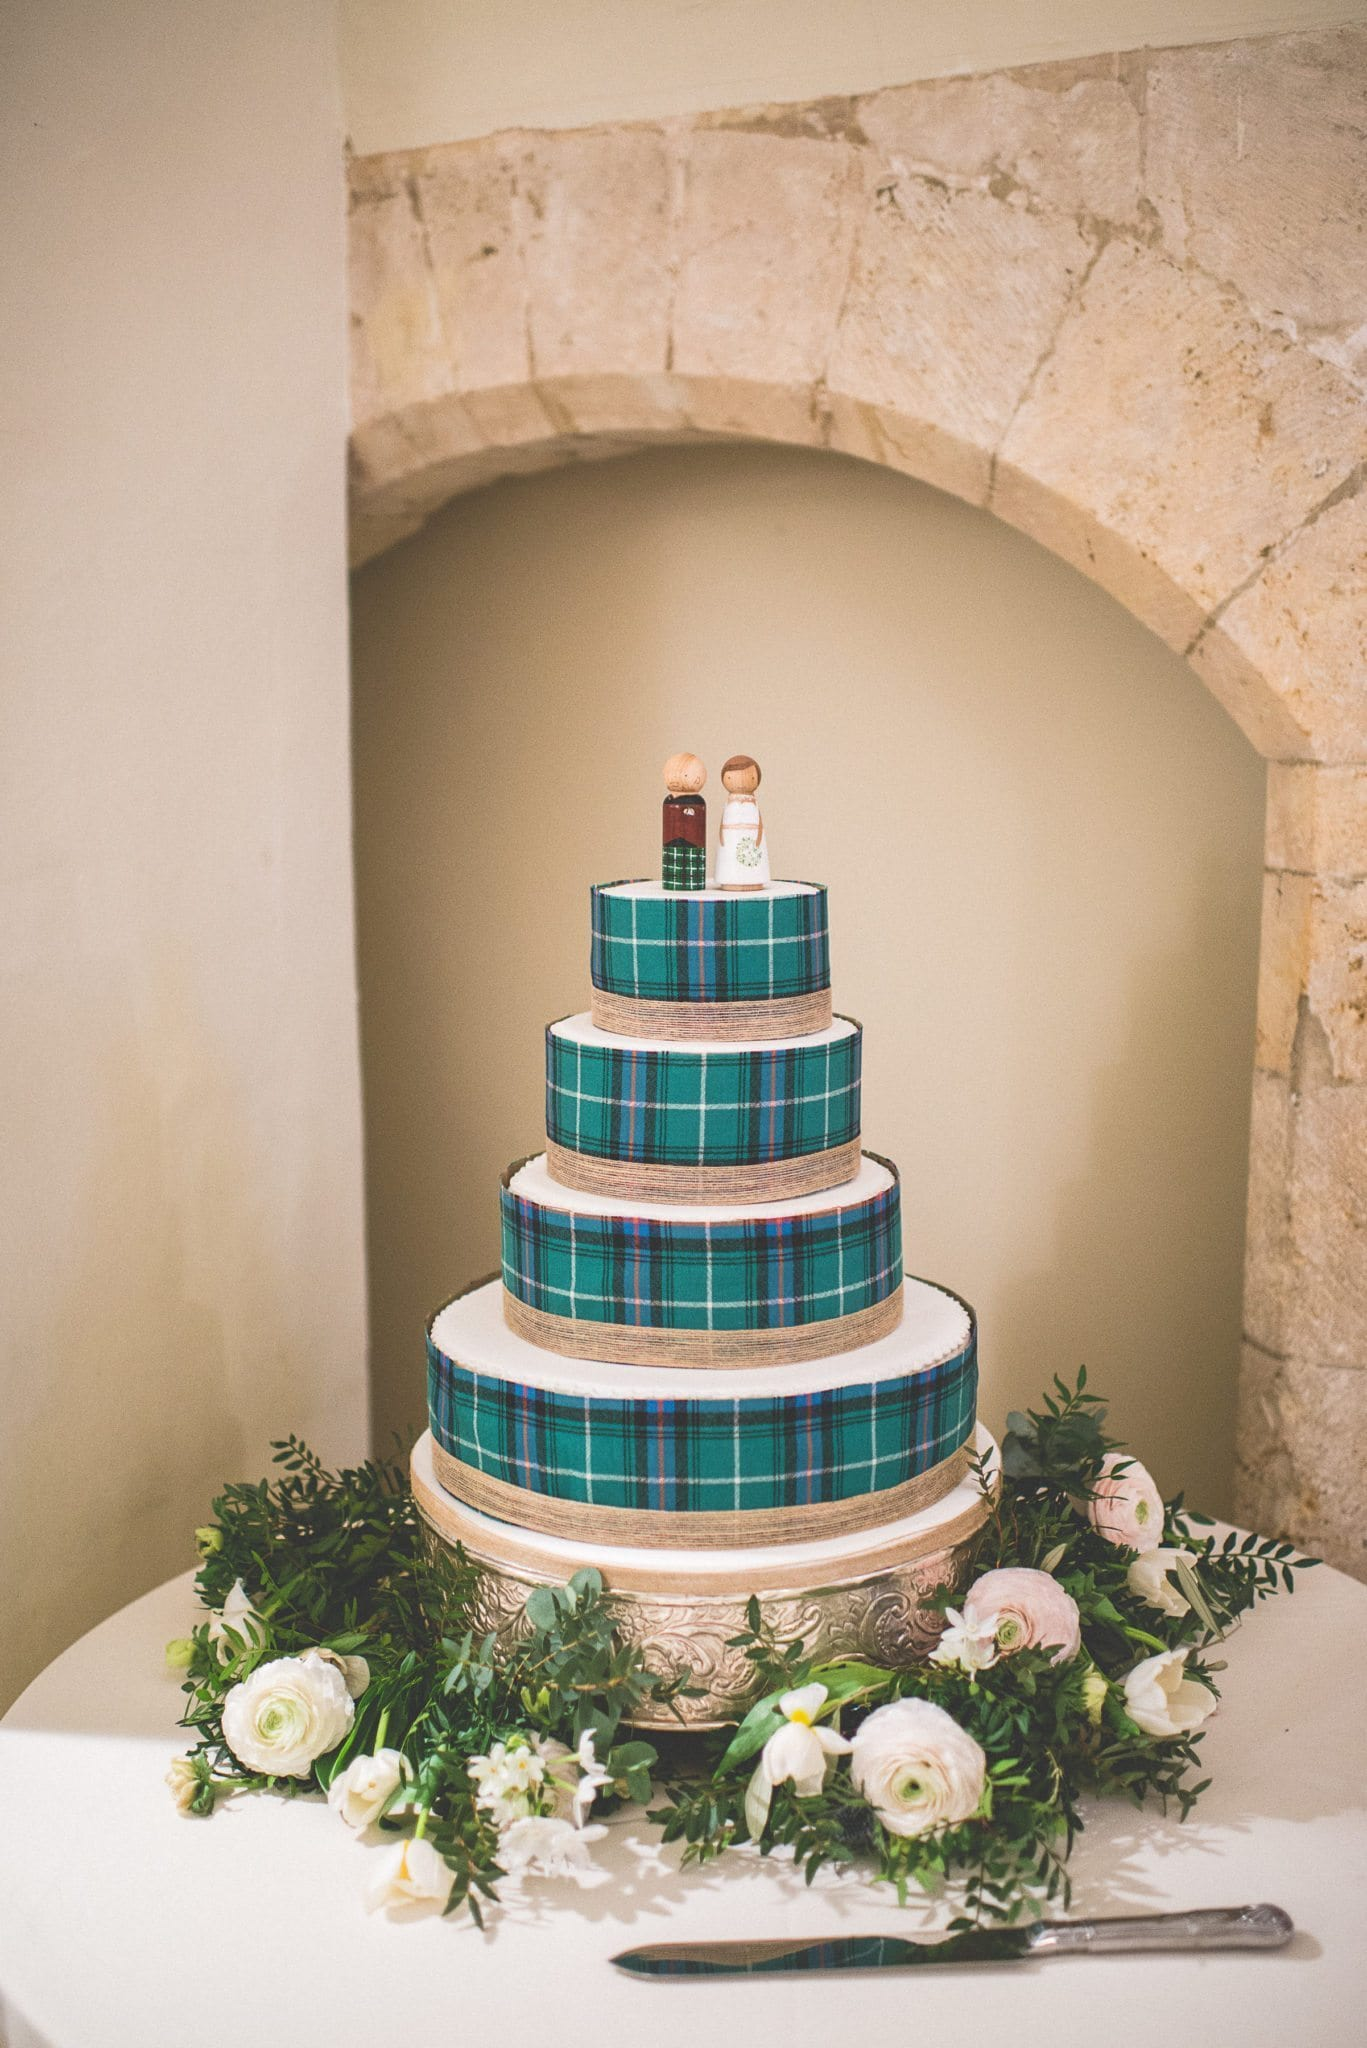 The couple's 4-tiered tartan wedding cake, made by the bride.